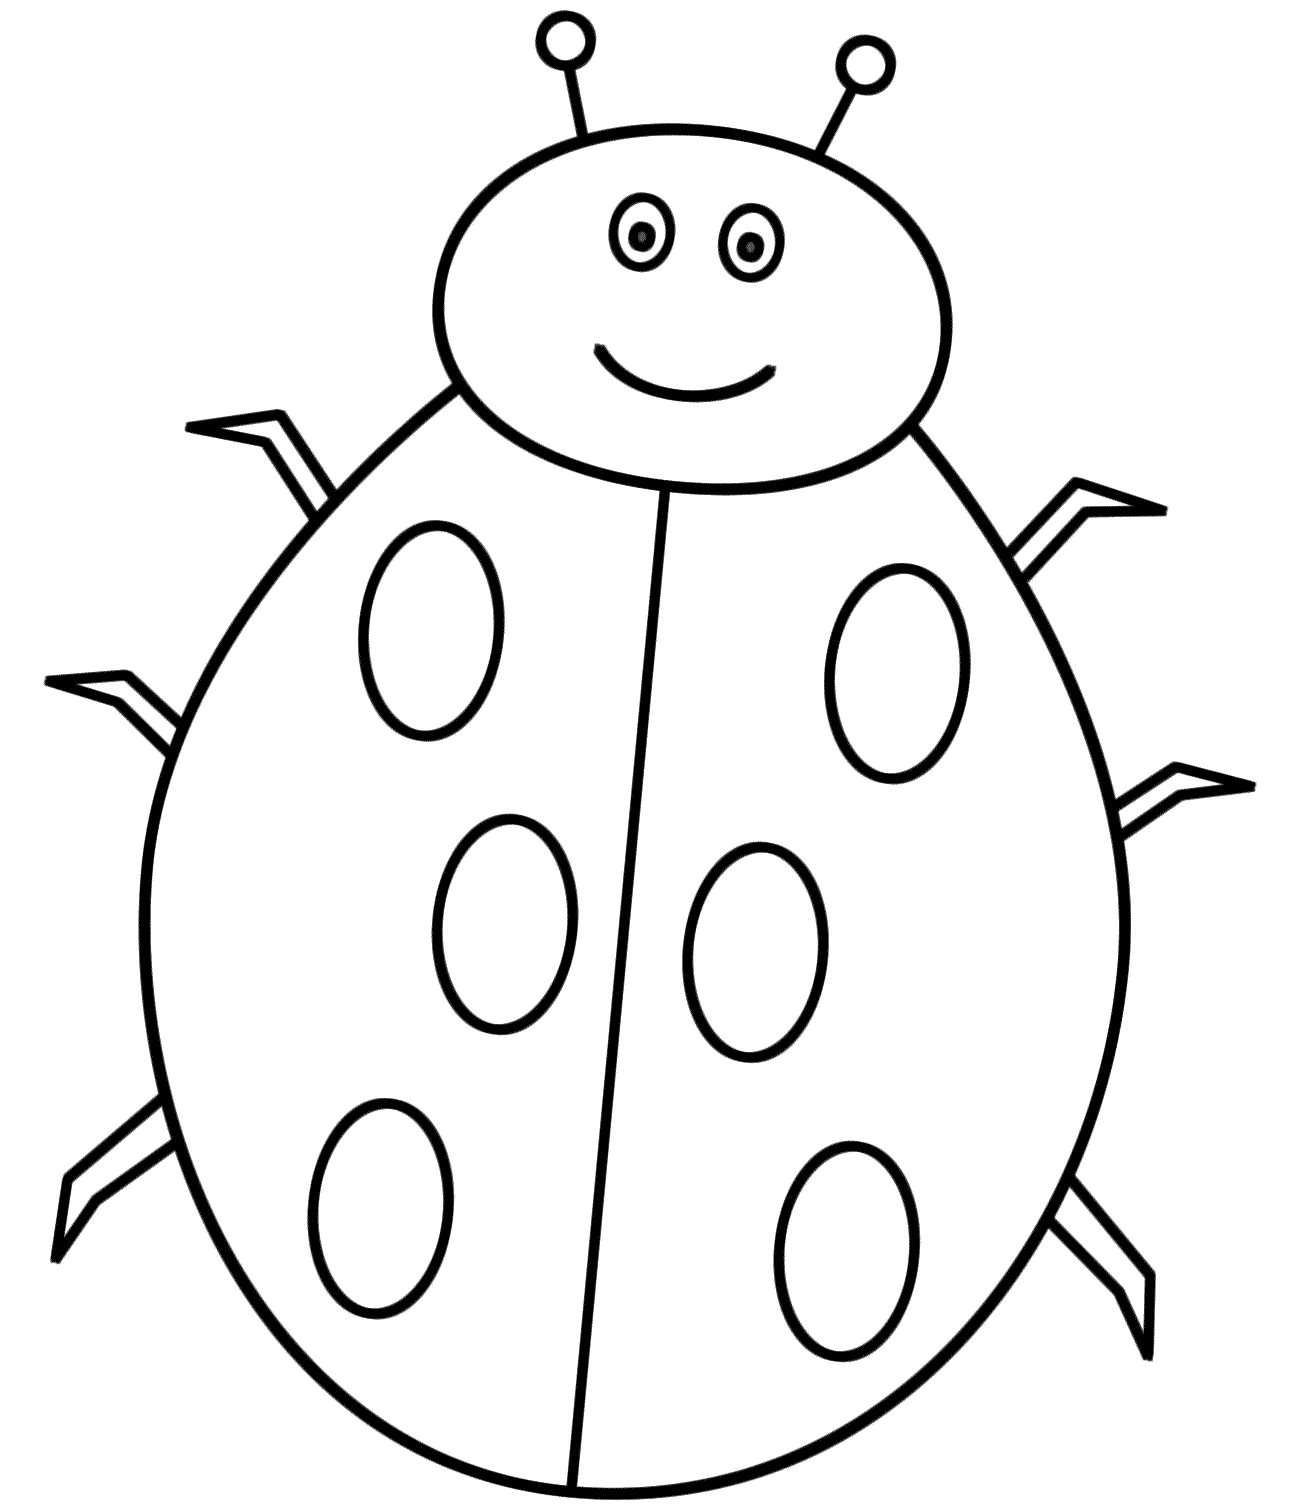 lady bug coloring pages ladybug coloring pages to download and print for free coloring bug pages lady